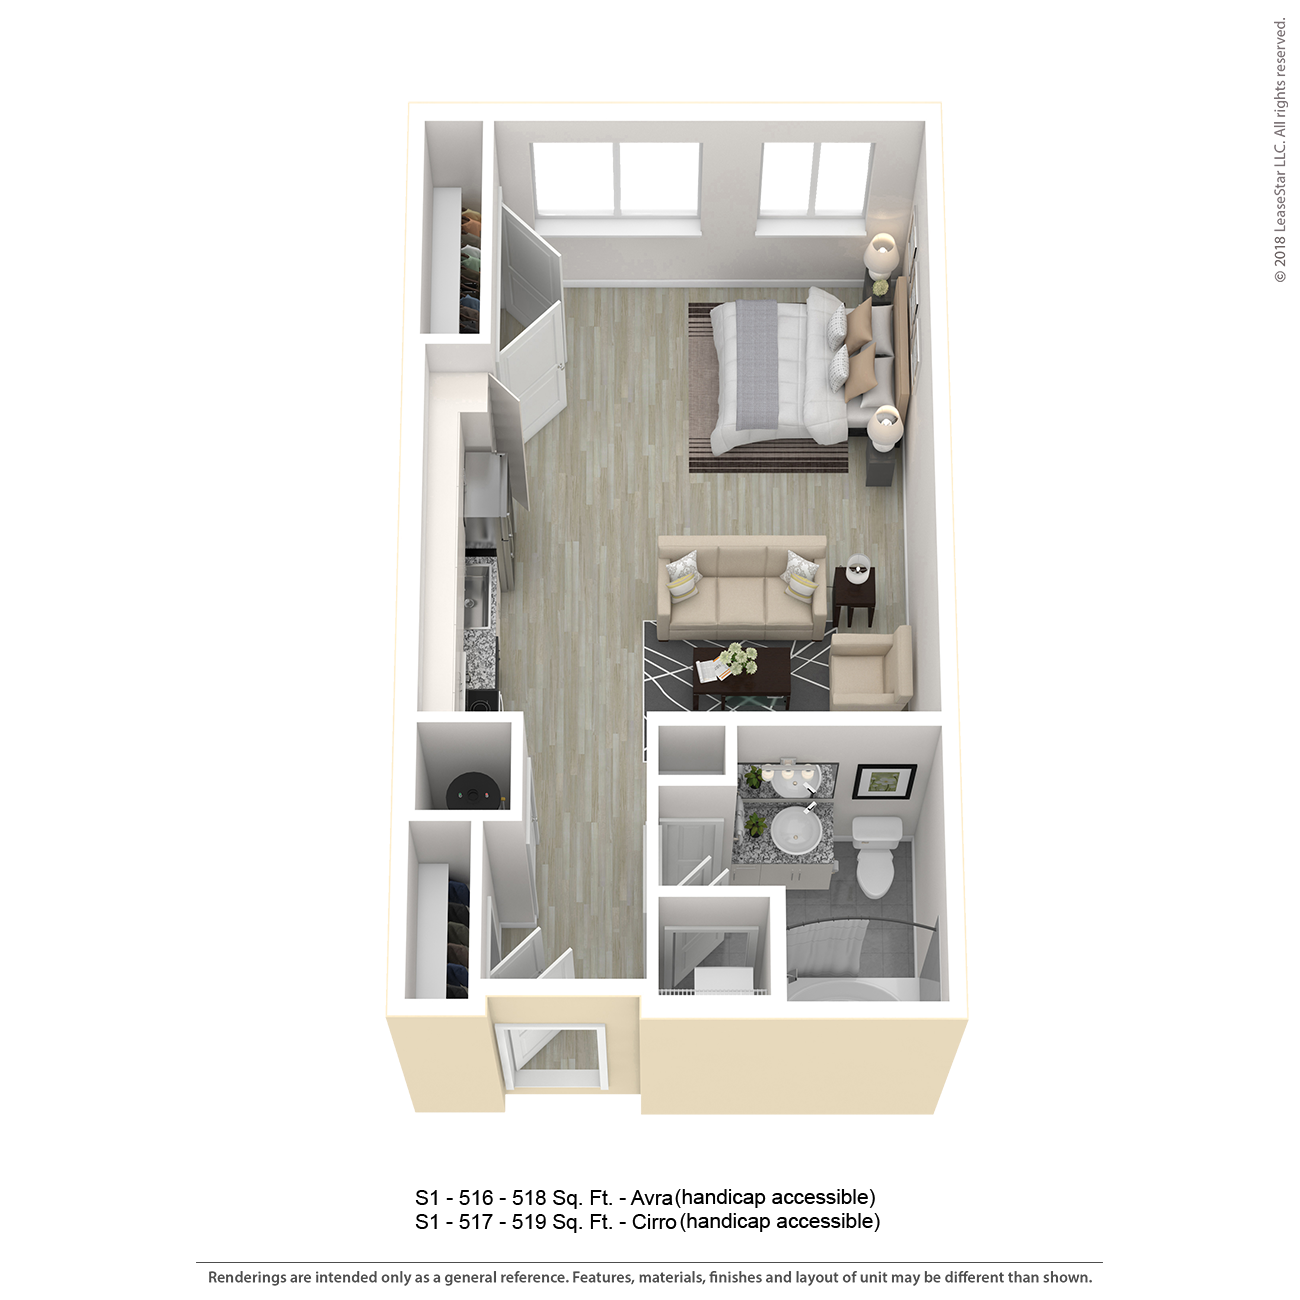 Center West Apartments Baltimore Md: S1 Apartment Floor Plan